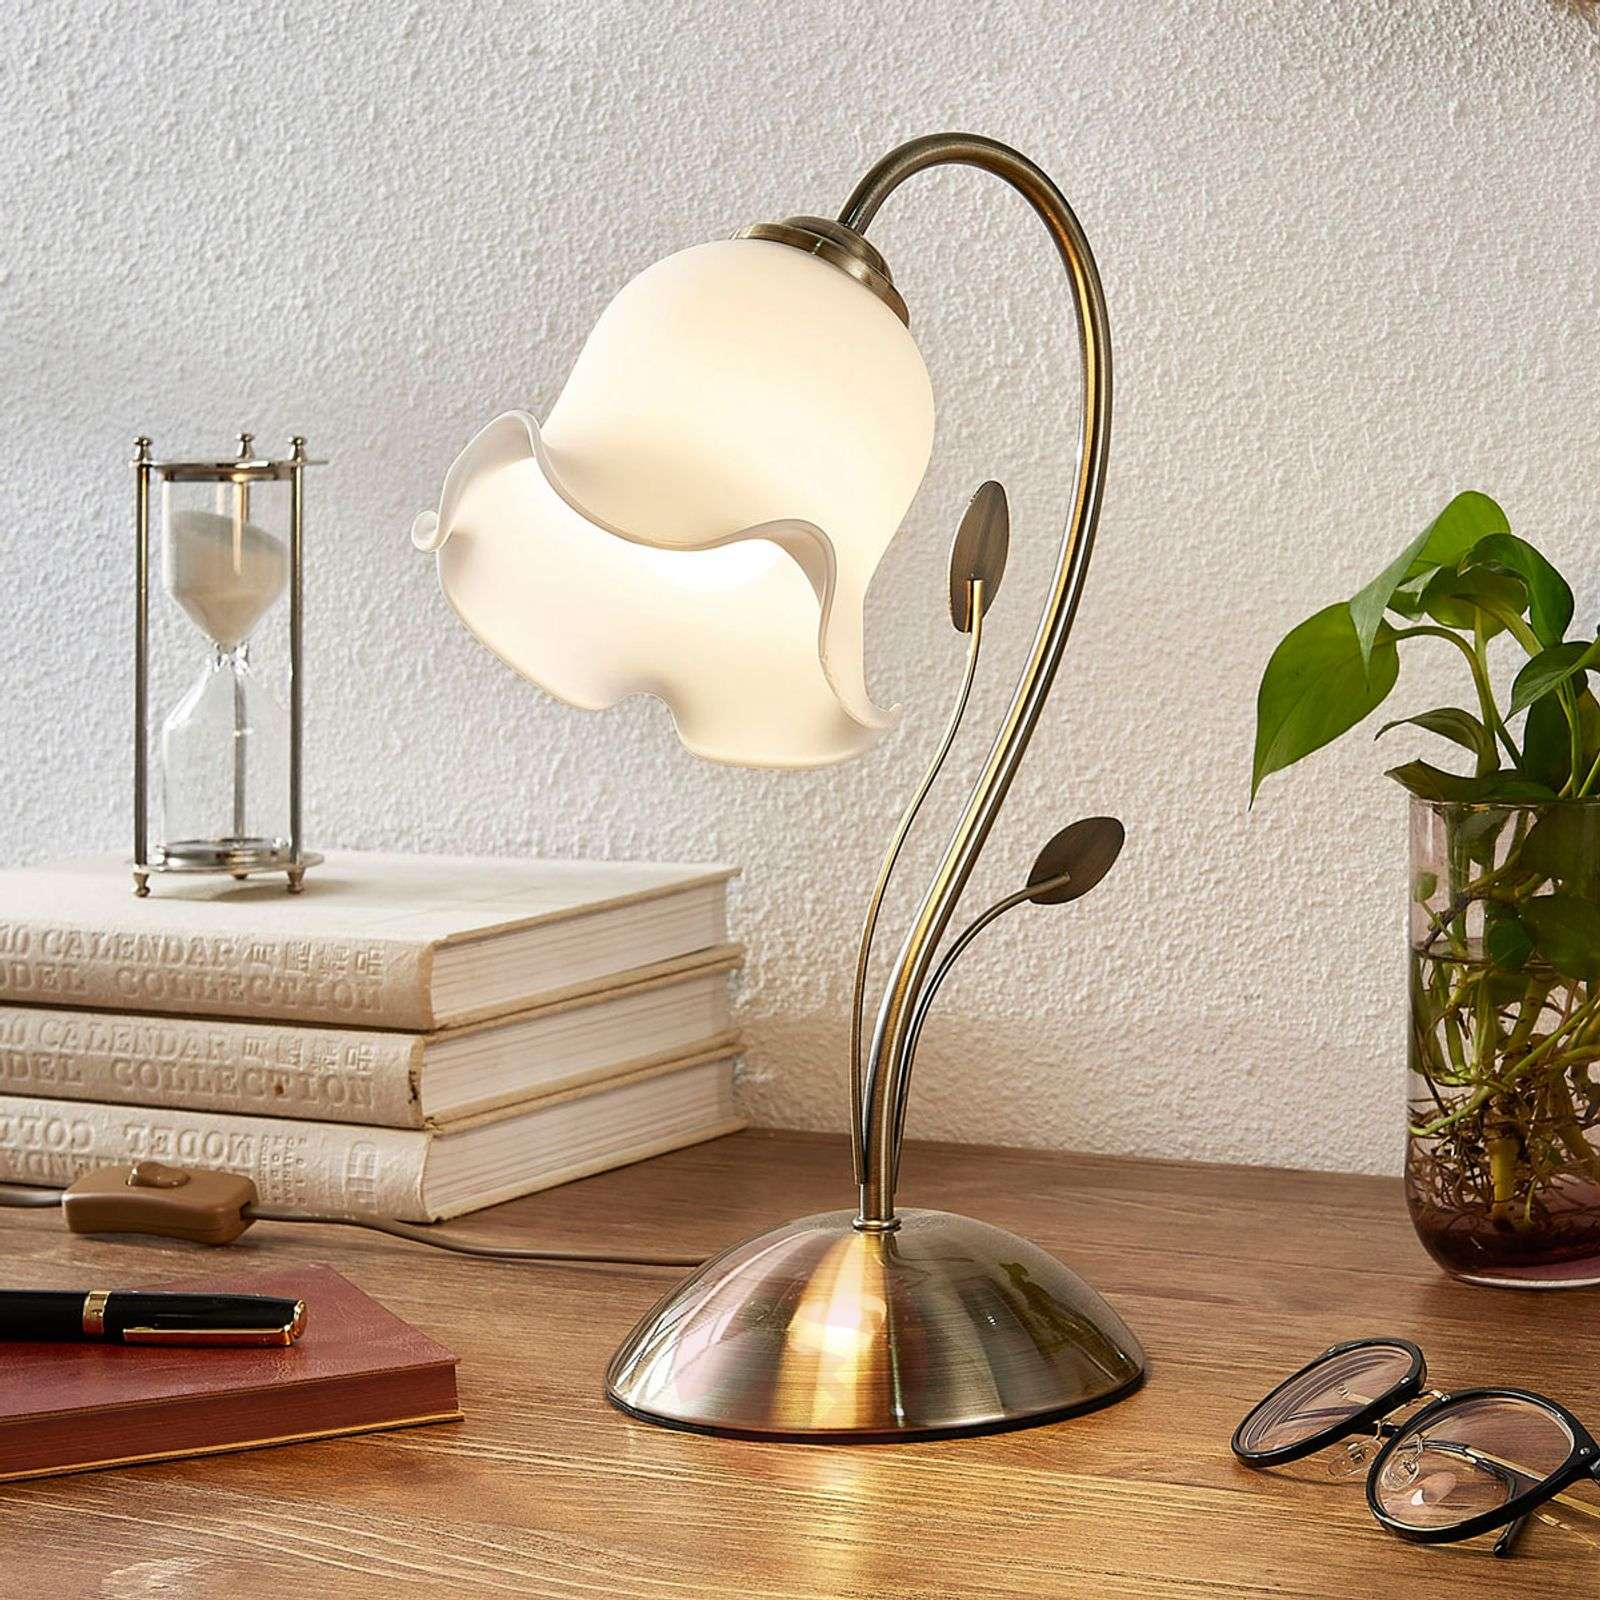 Table lamp Matea with a floral design-9620757-02